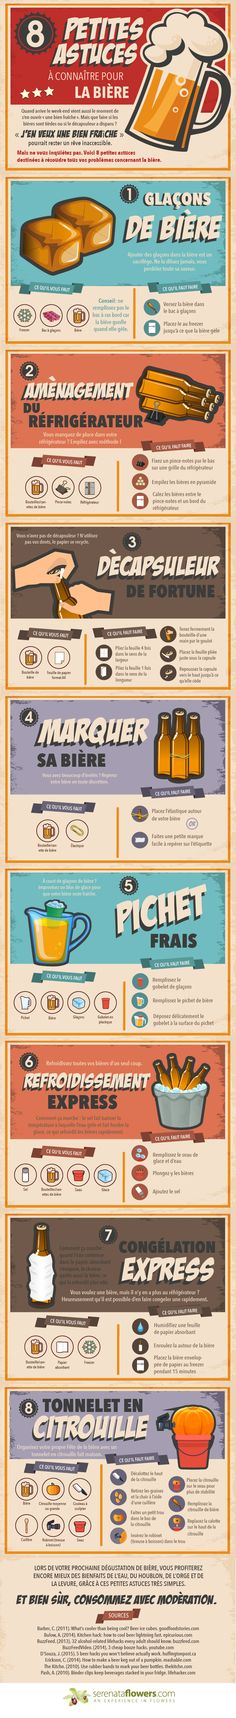 8-beer-hack-you-didn't-know-about-FRENCH